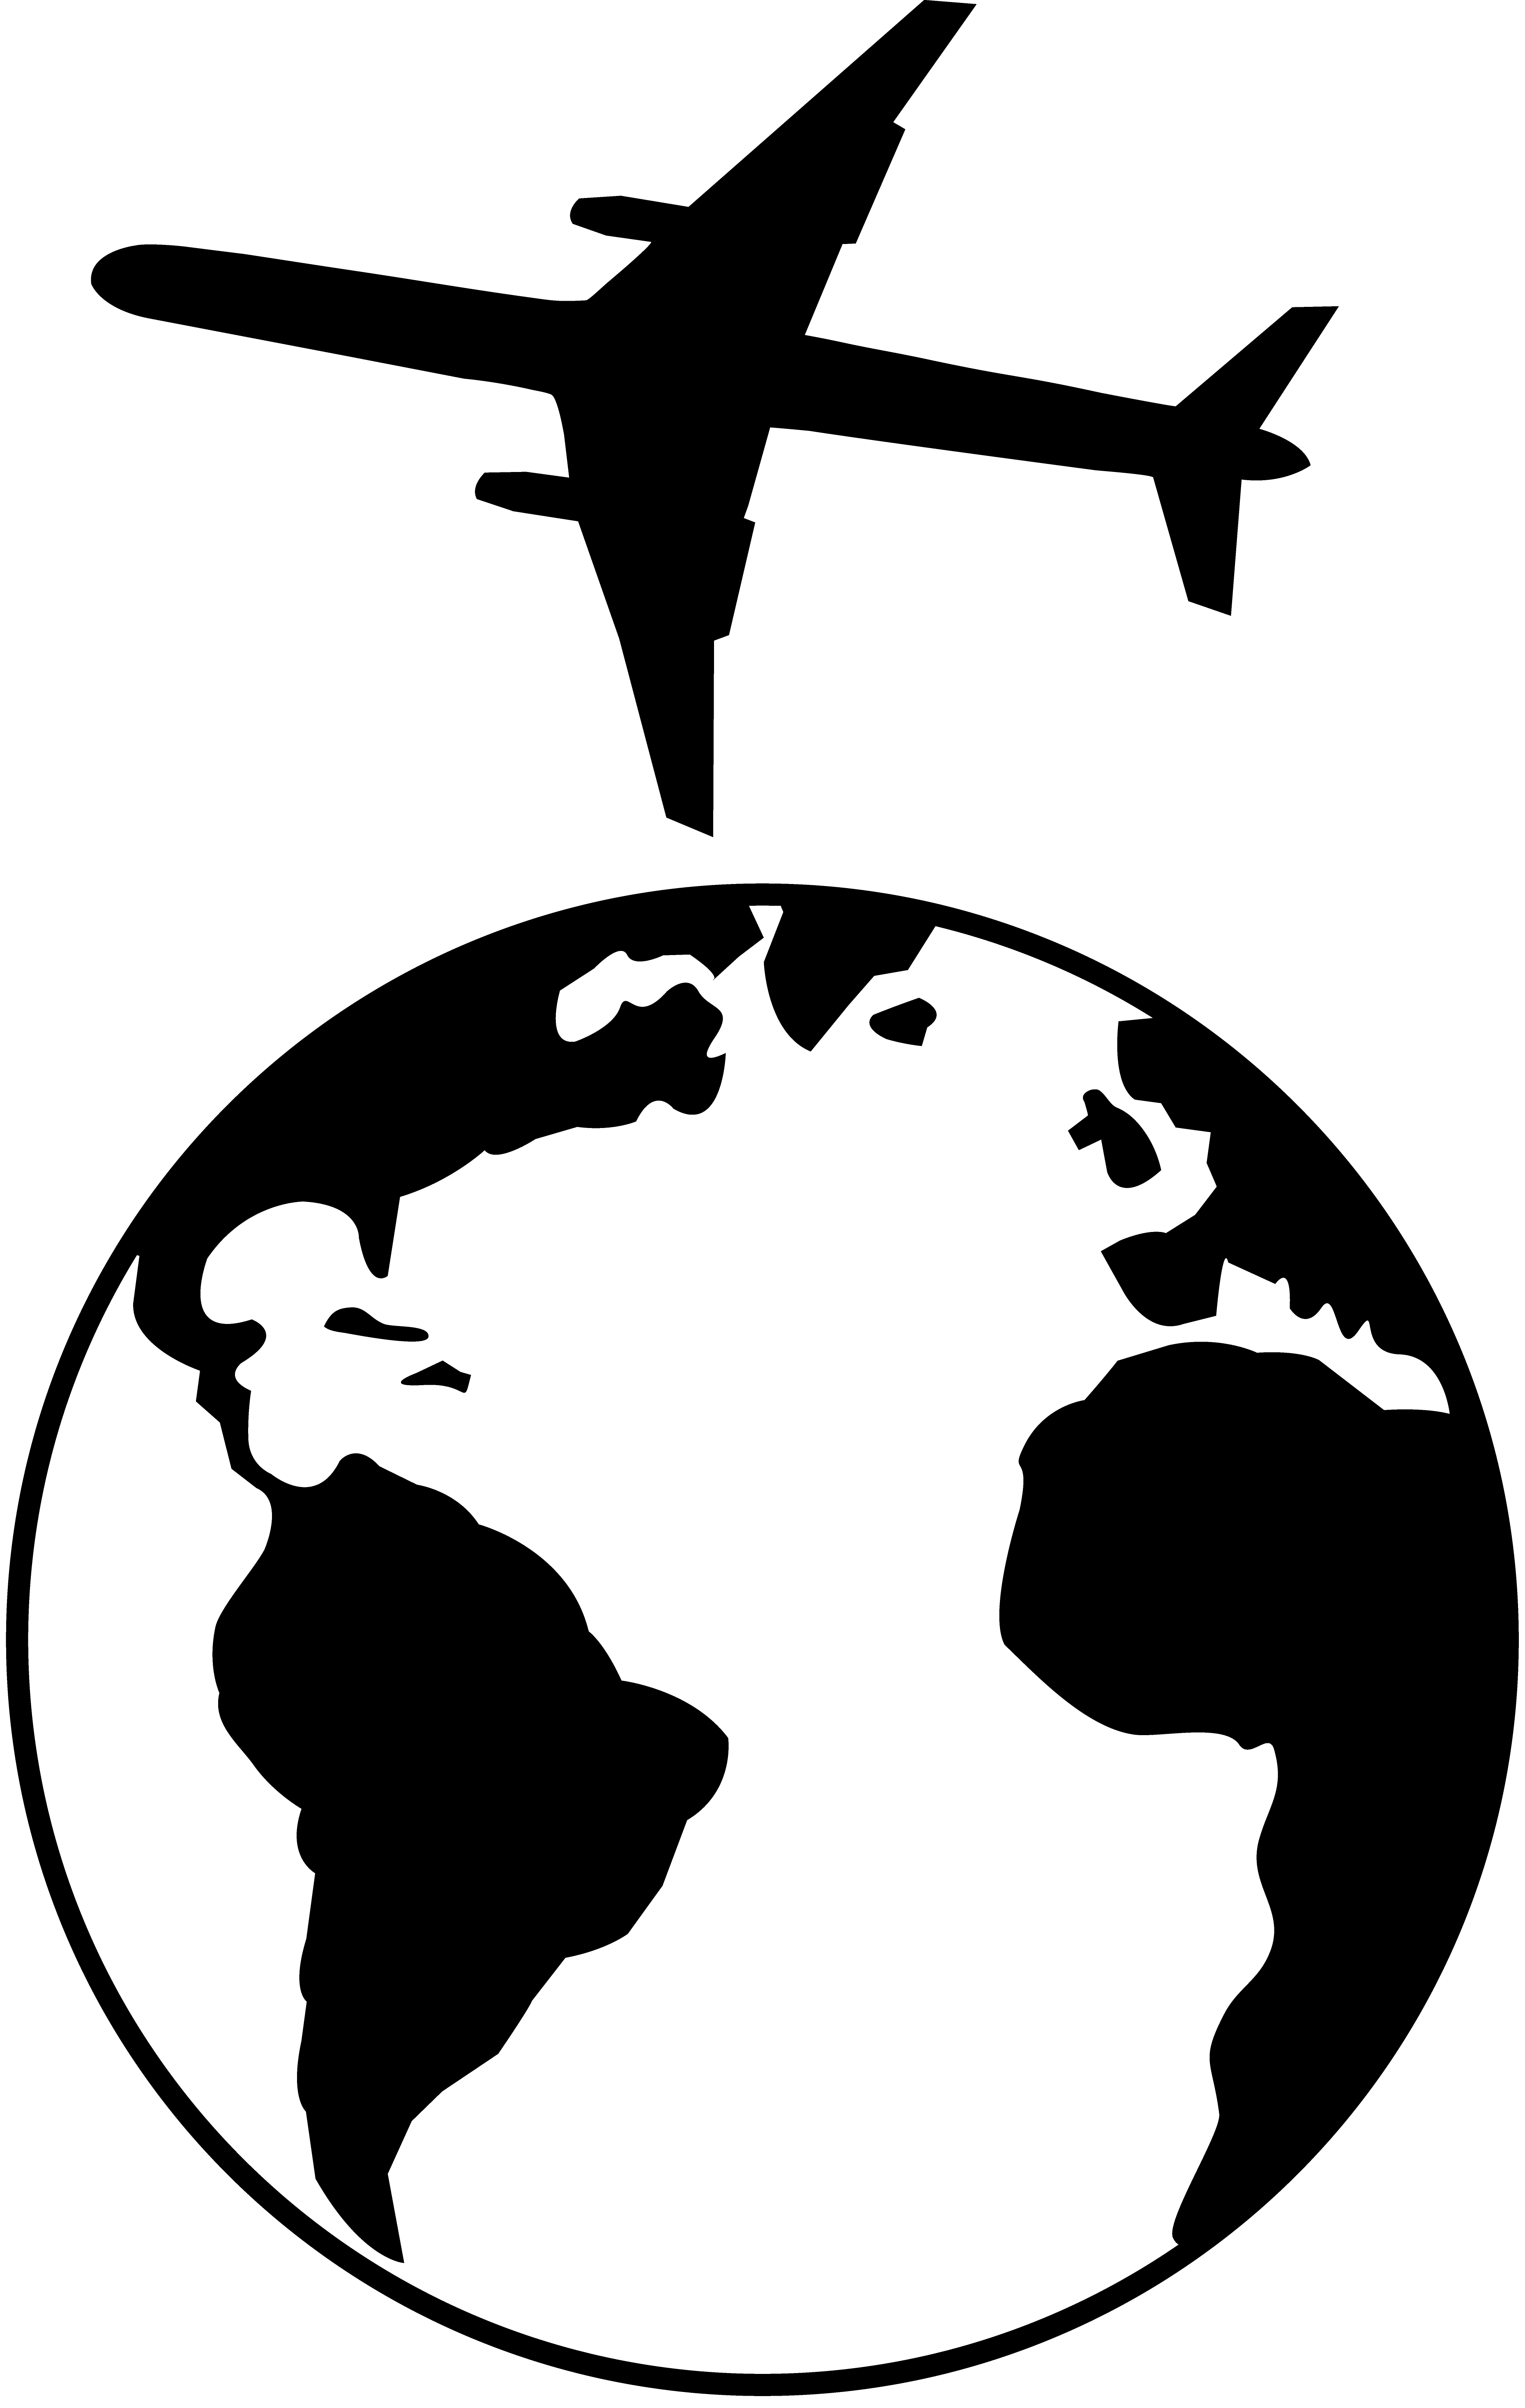 3712x5862 Earth Black And White